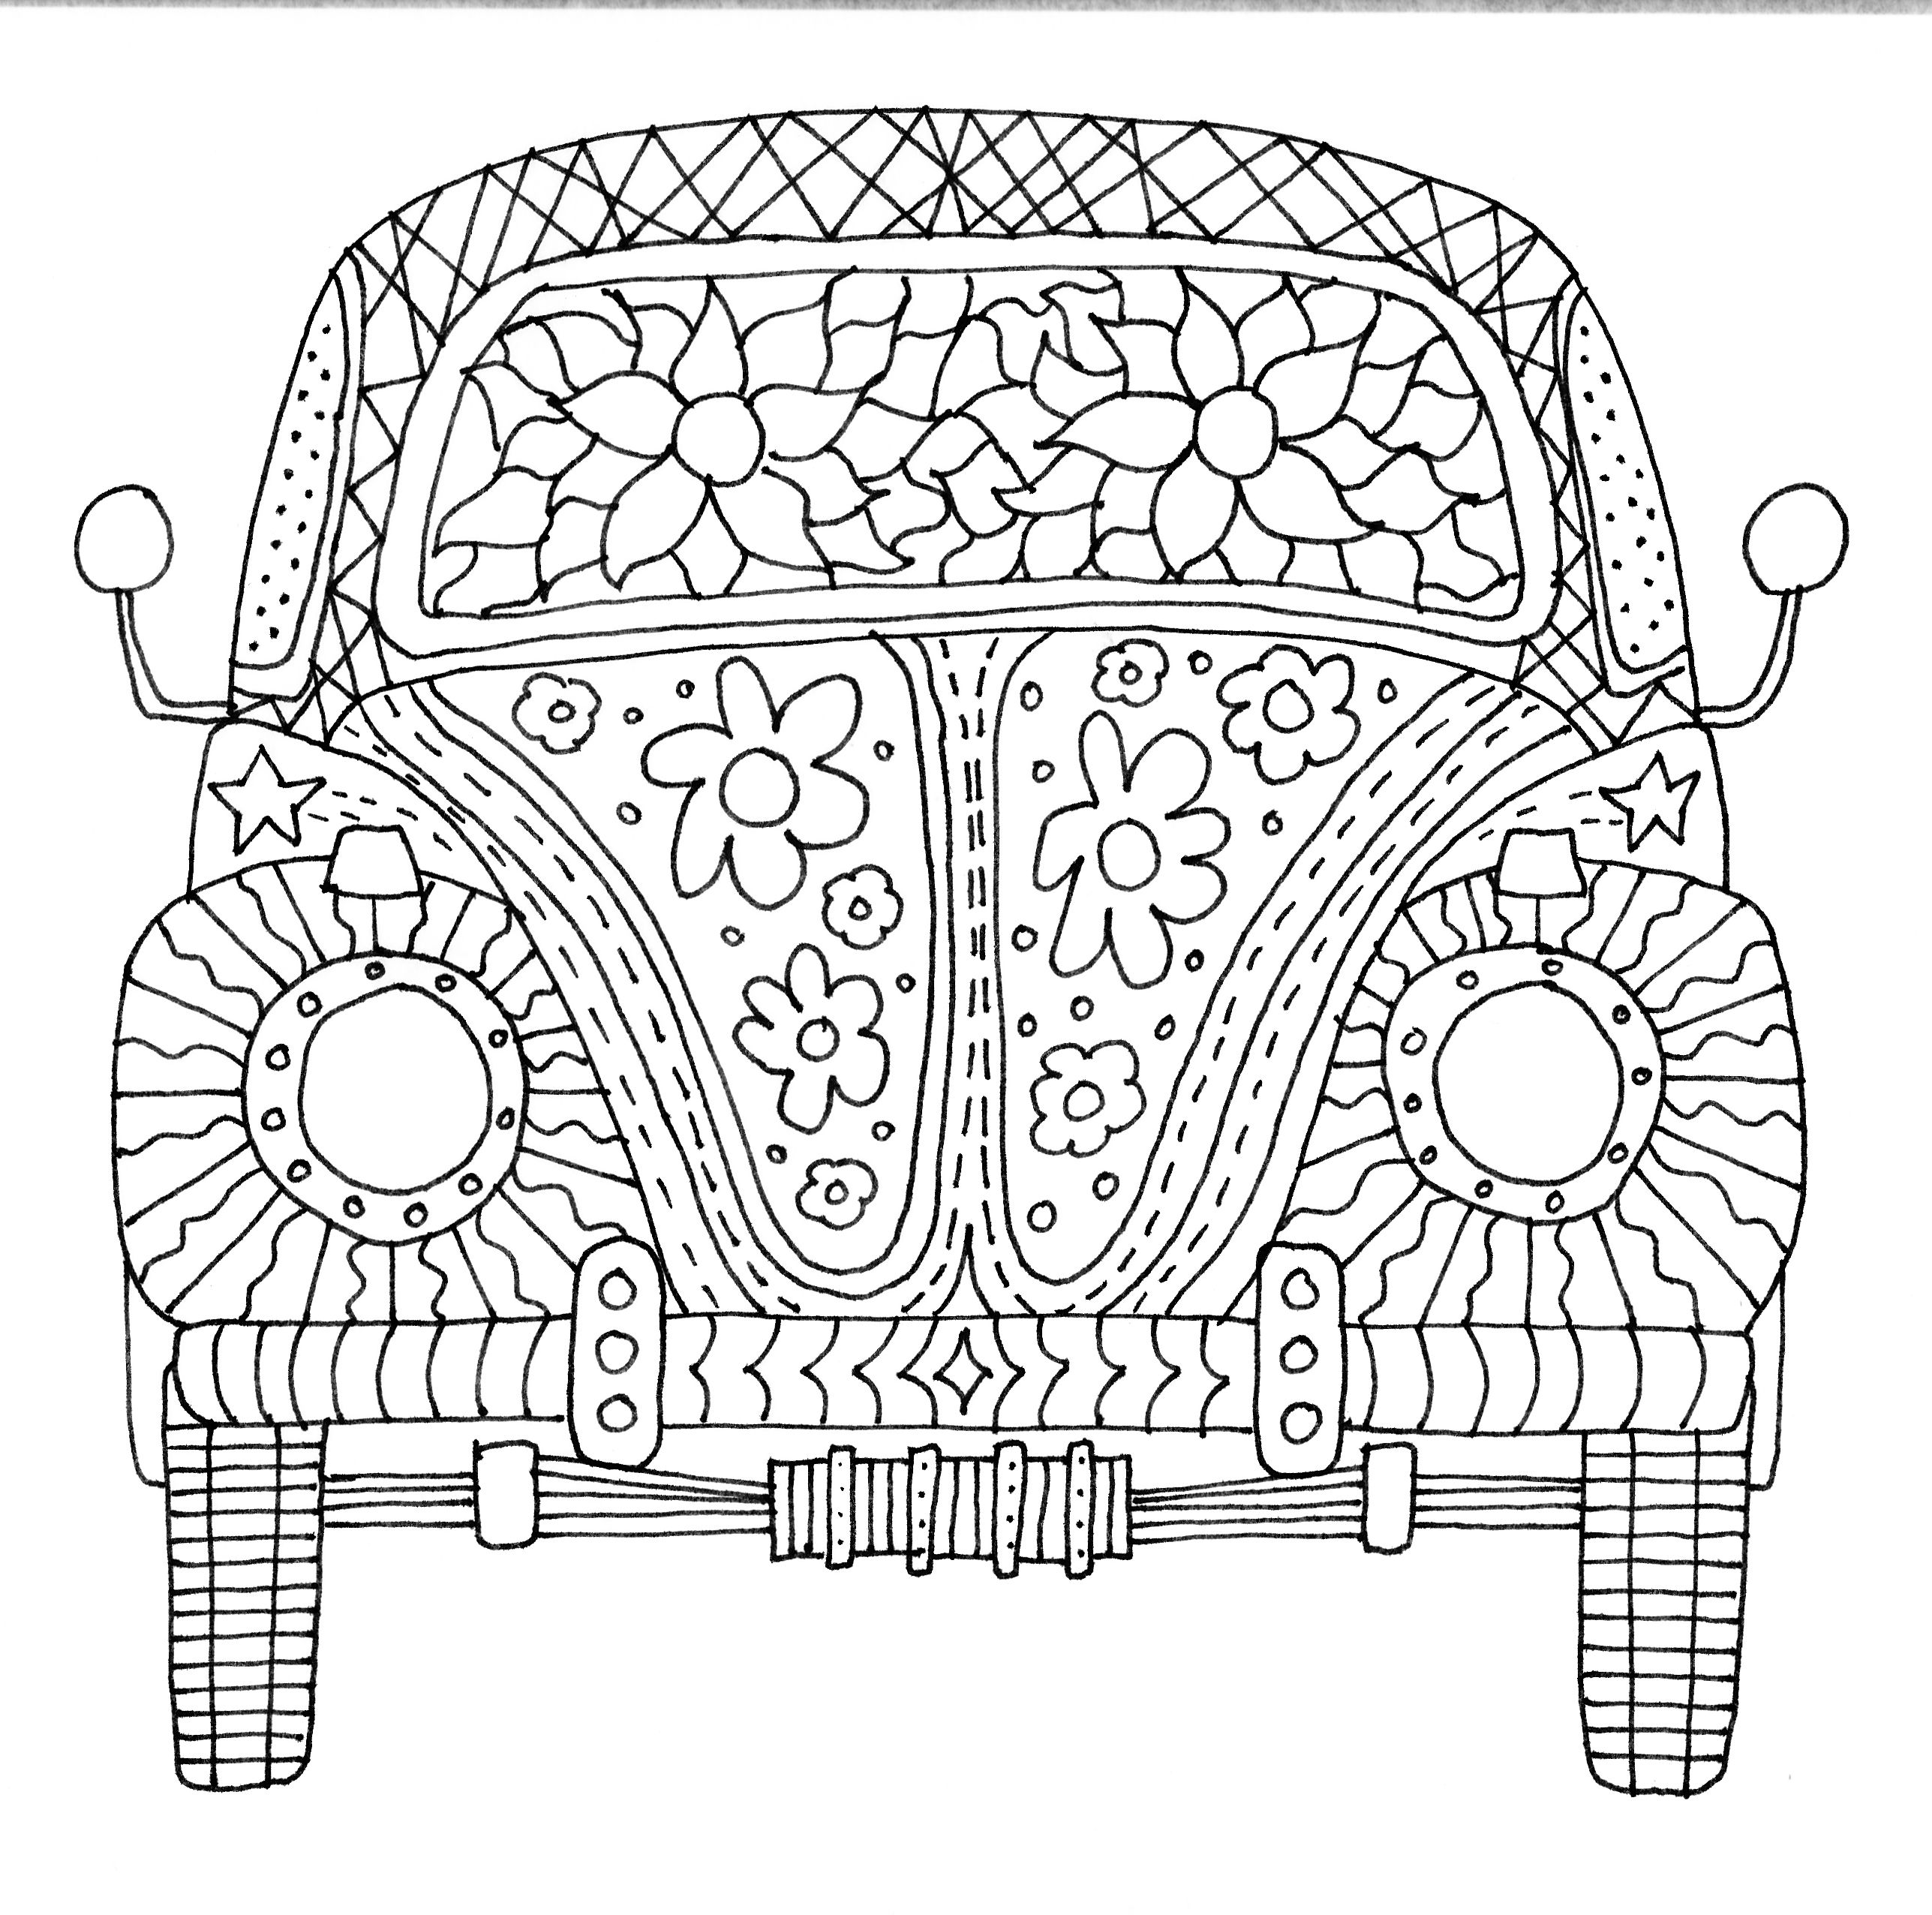 Herbie the Love Bug, Volkswagen VW Coloring Page Free